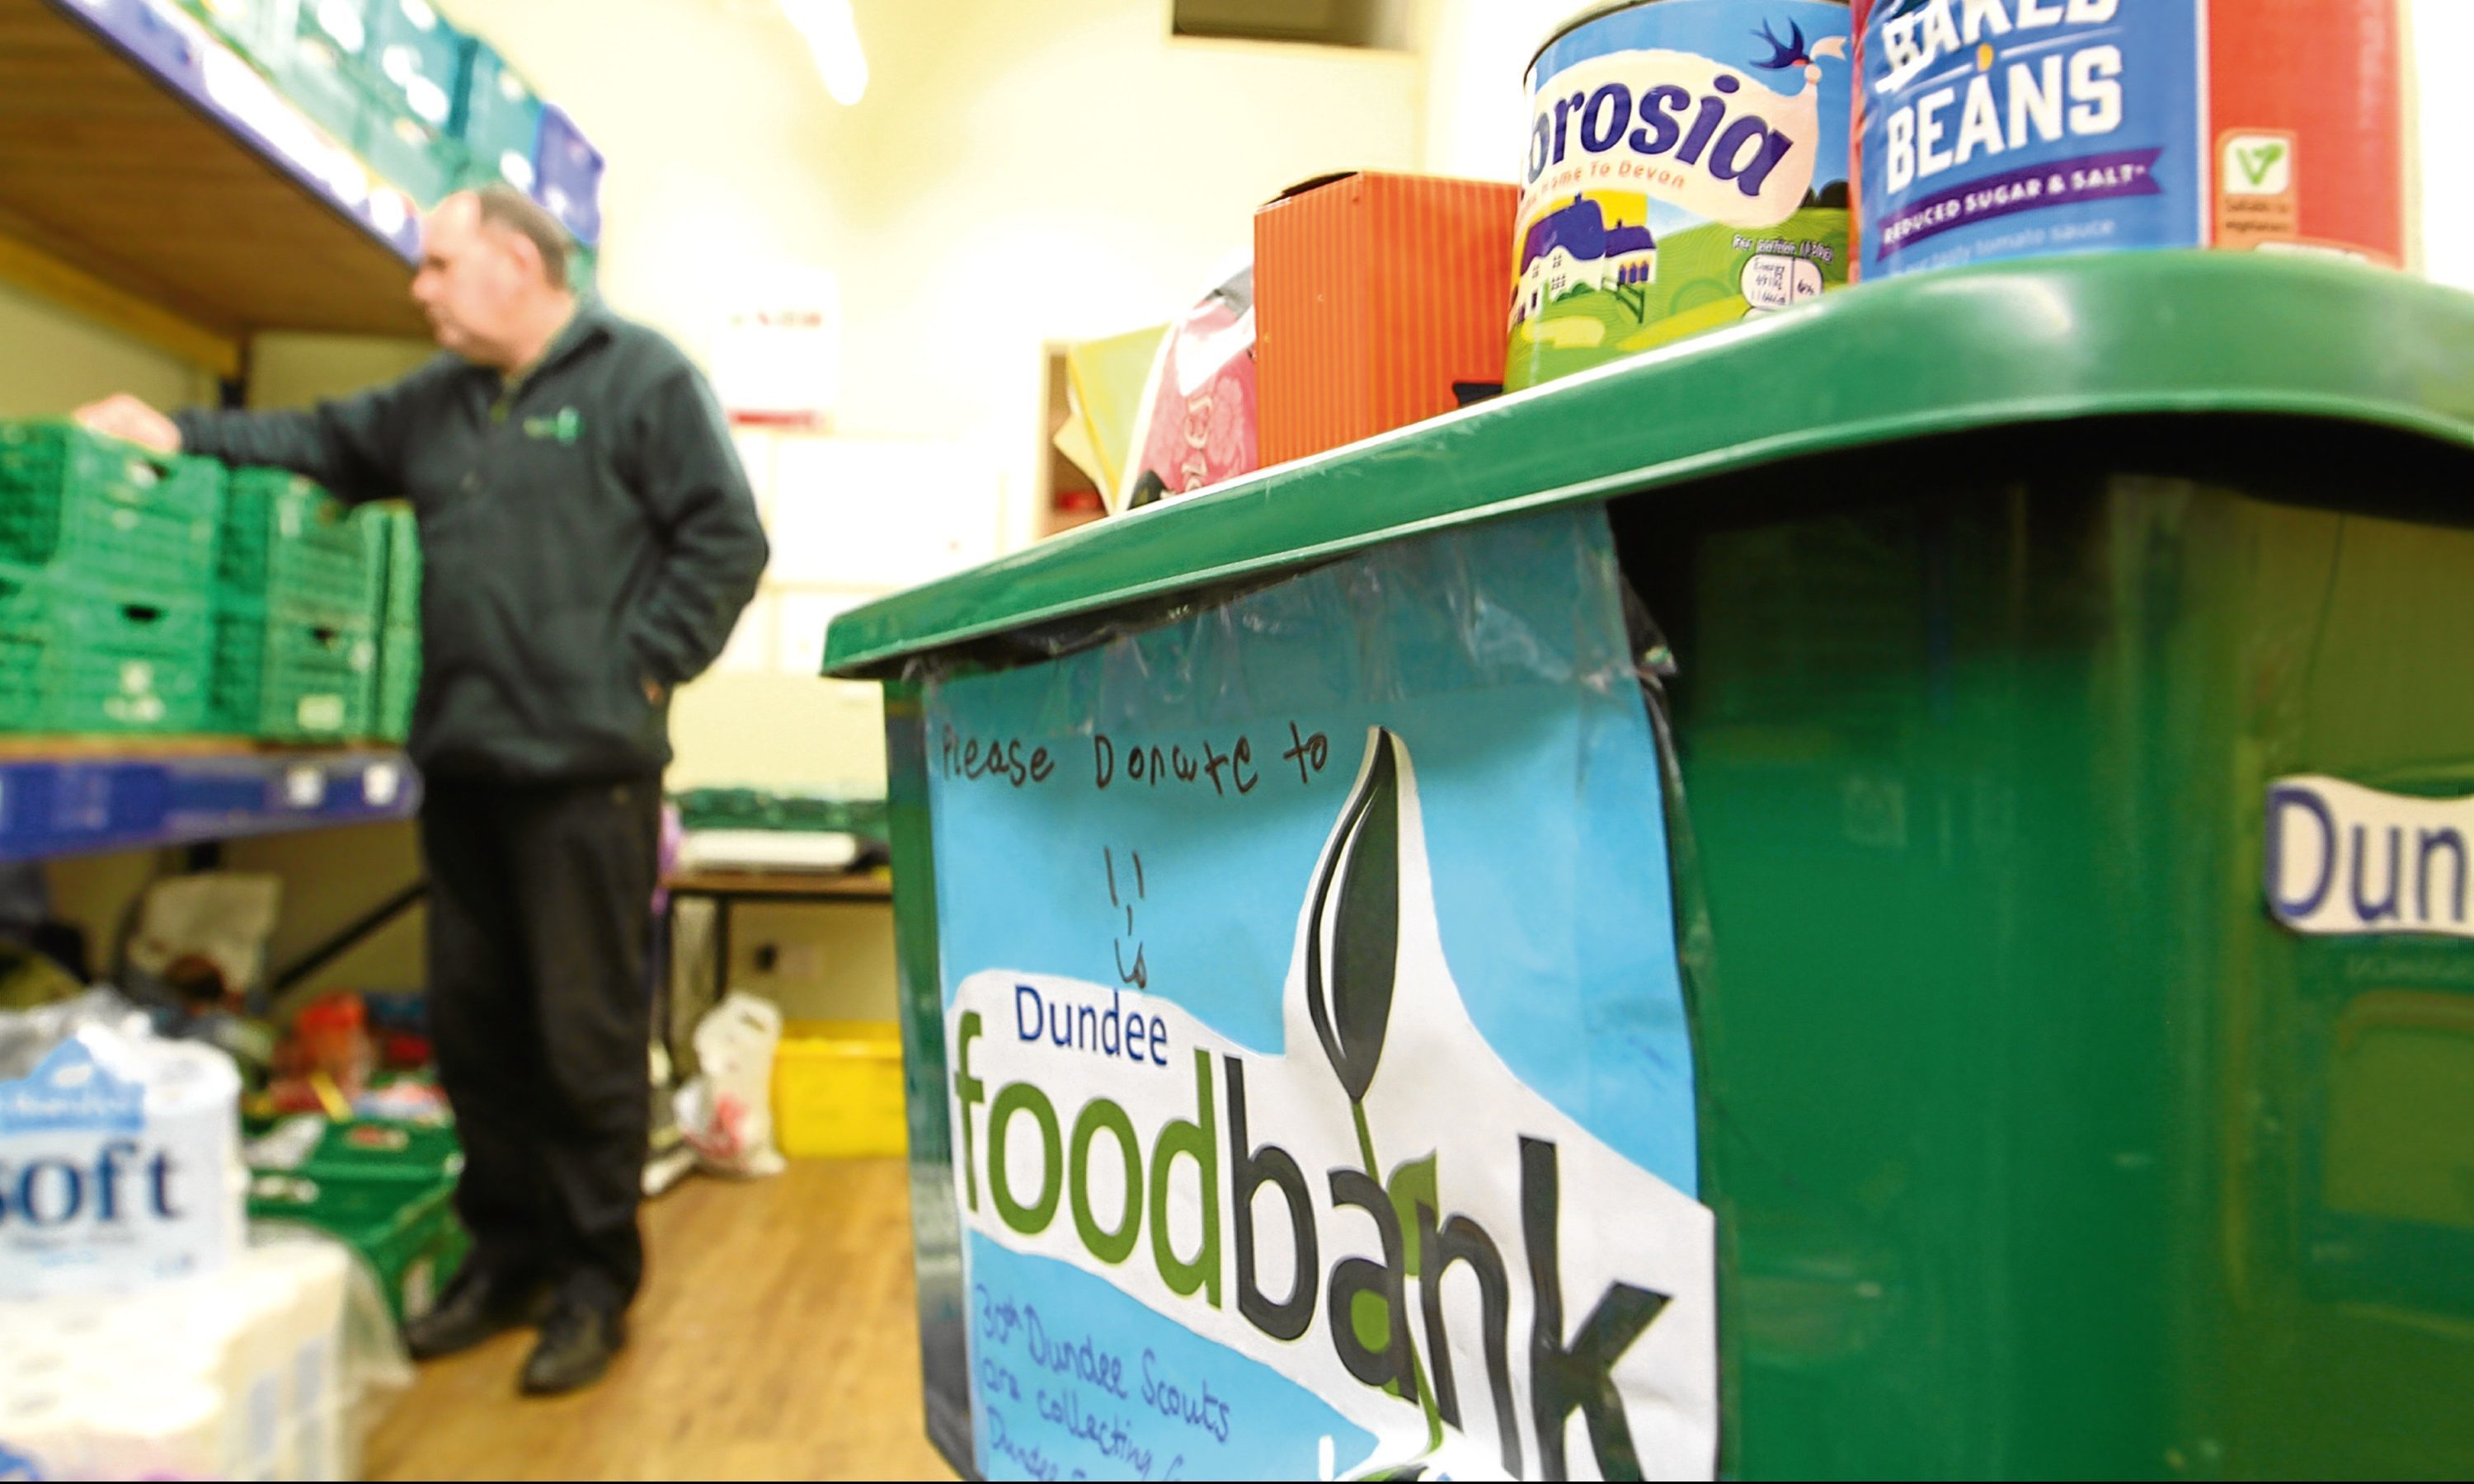 Ken Linton, Dundee Foodbank manager, gets ready to sort the next delivery